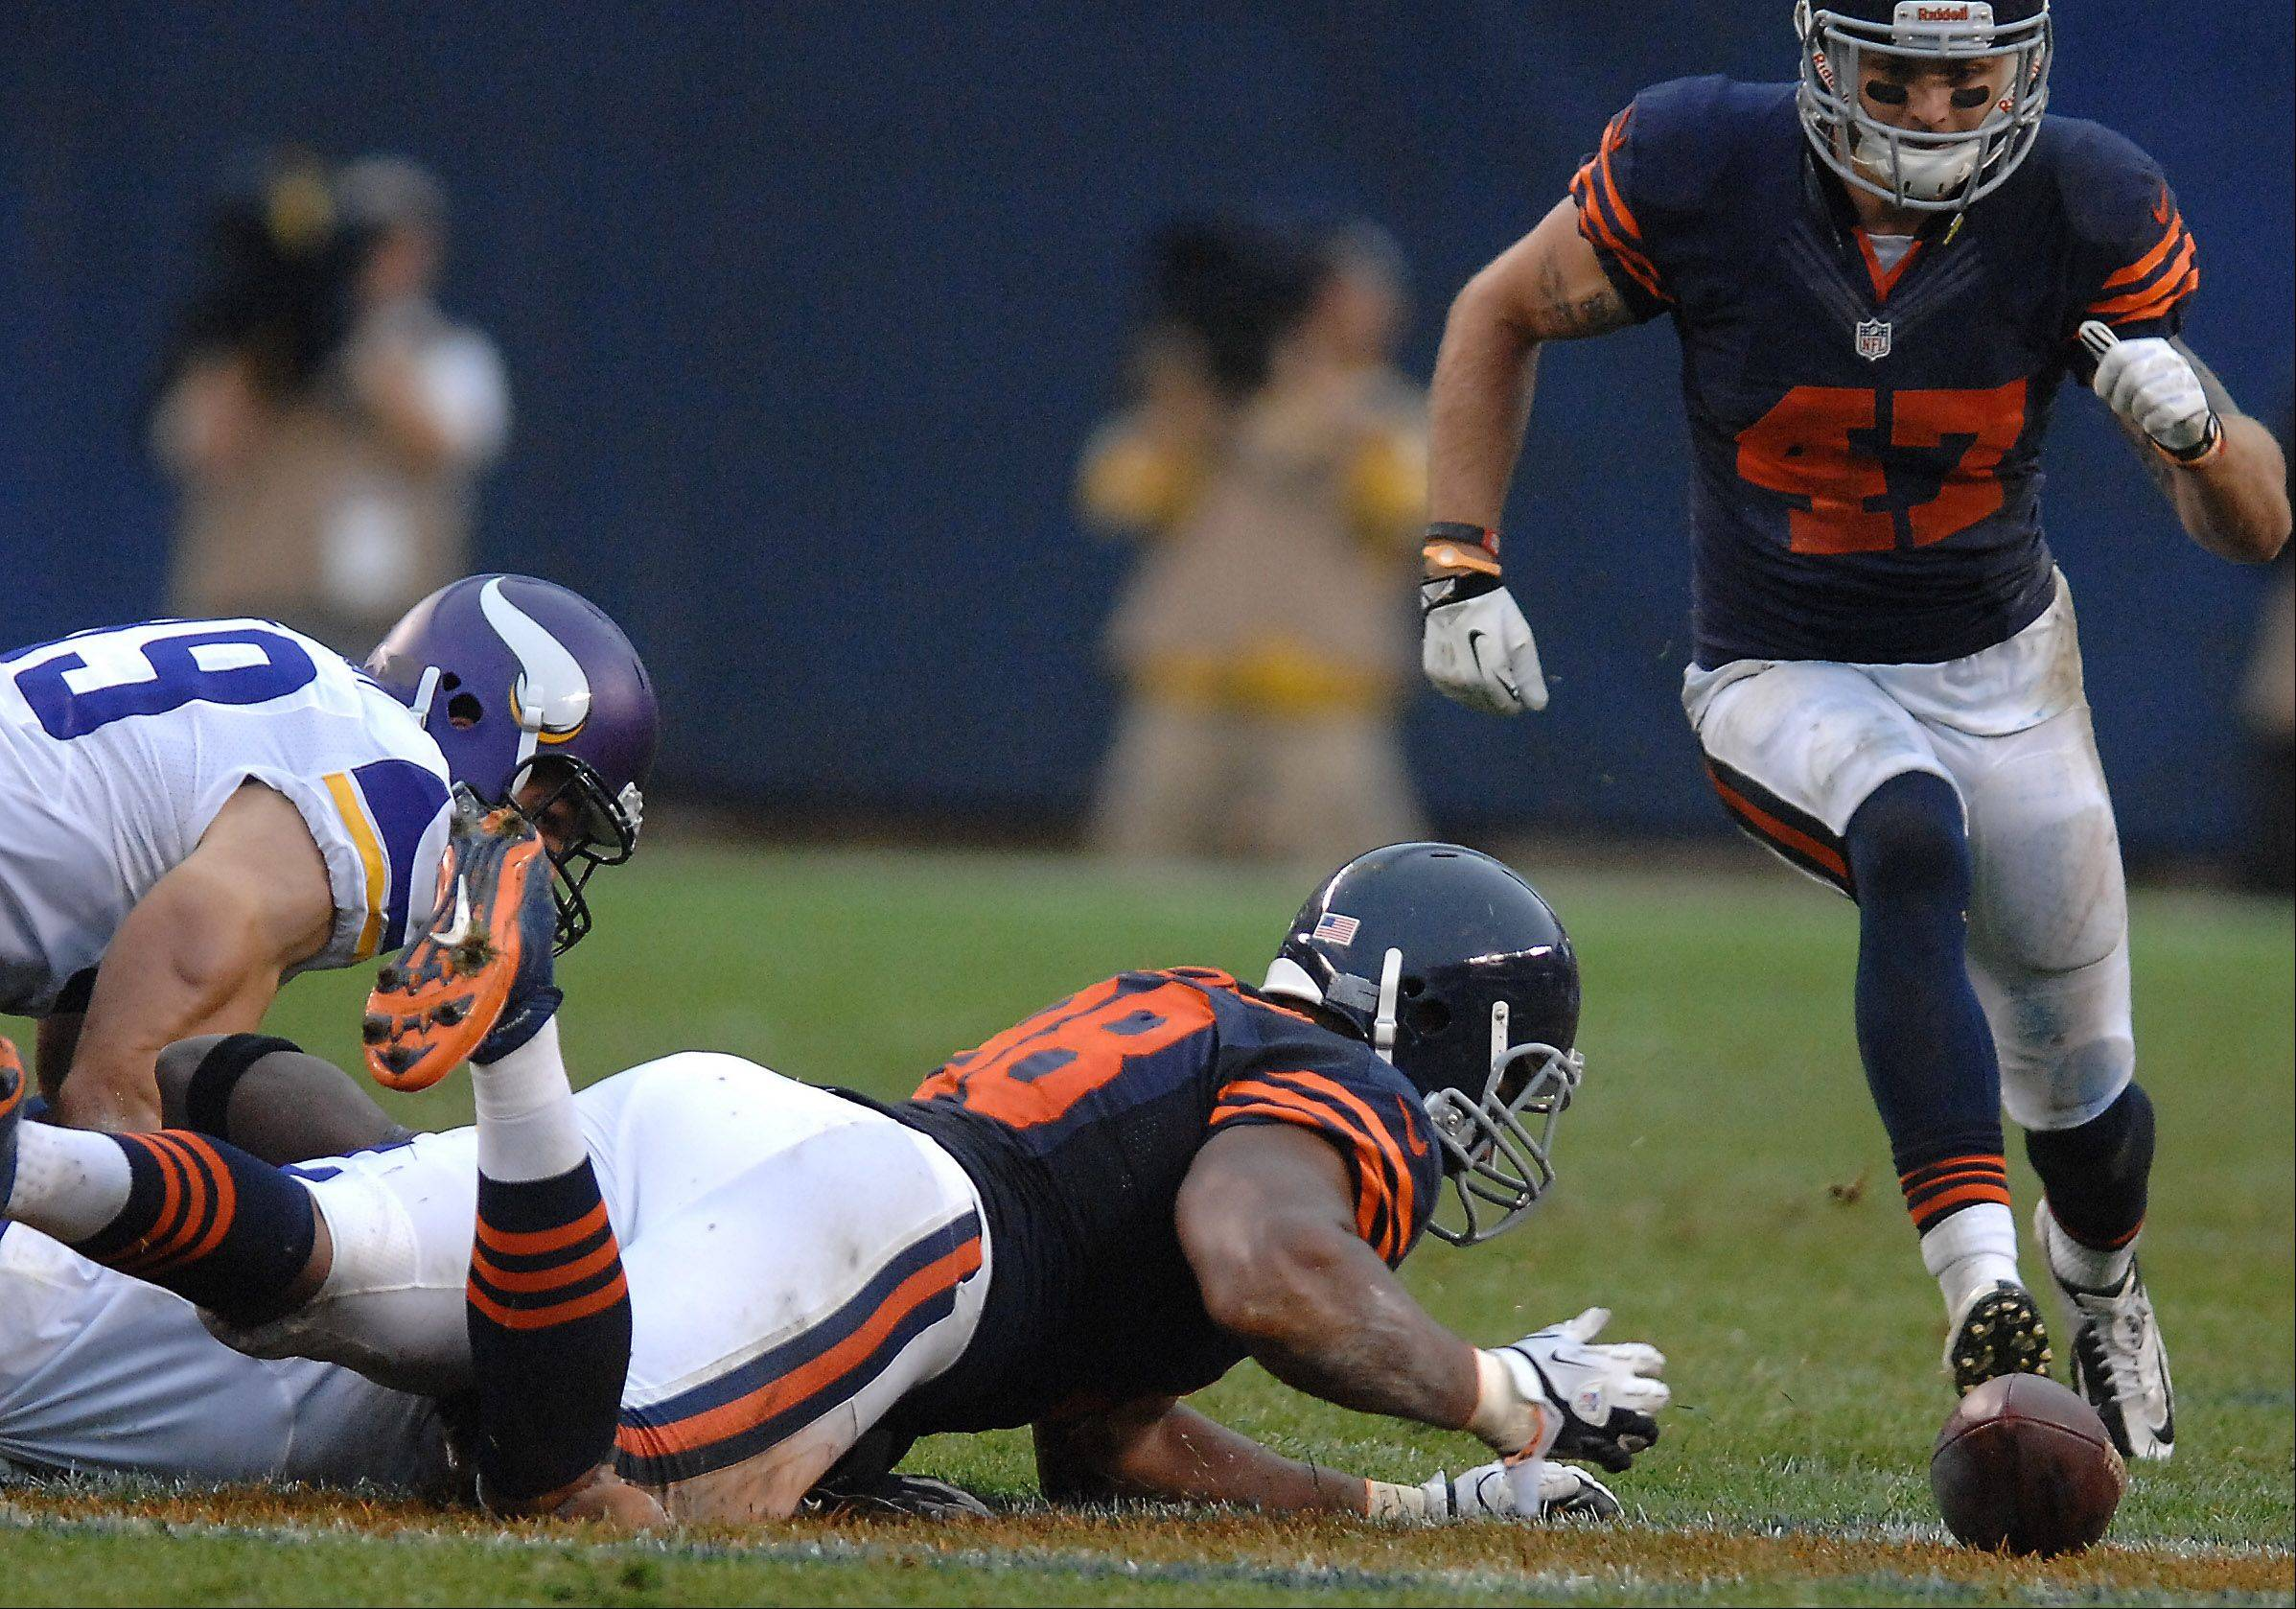 Chicago Bears defensive end Corey Wootton (98) reaches out to grab a fumble during Sunday's game at Soldier Field in Chicago.